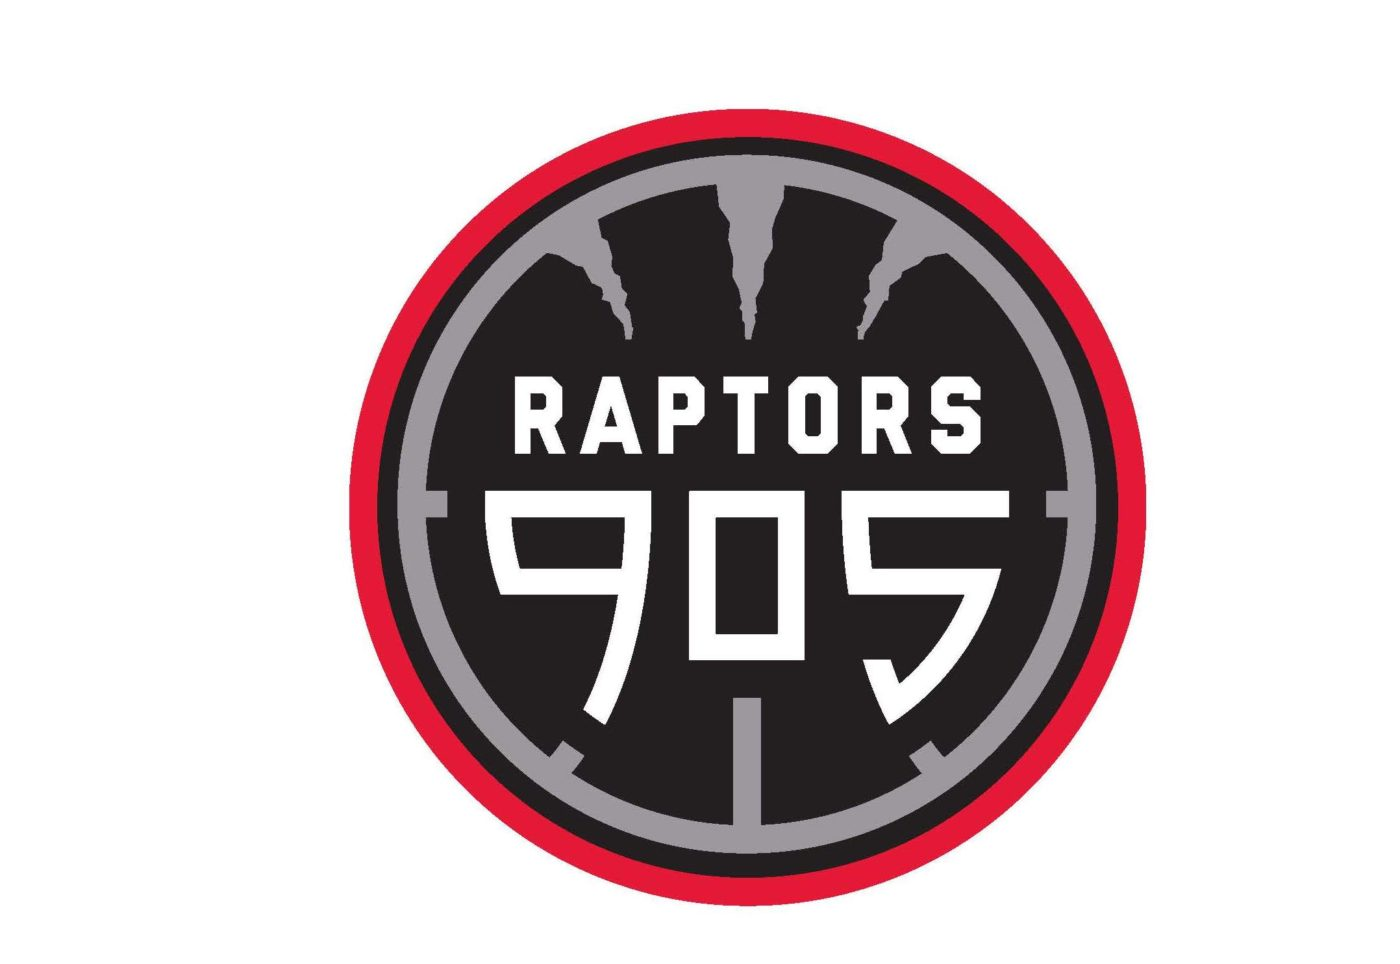 Raptors 905 to open second round on Sunday April 16th, 2017